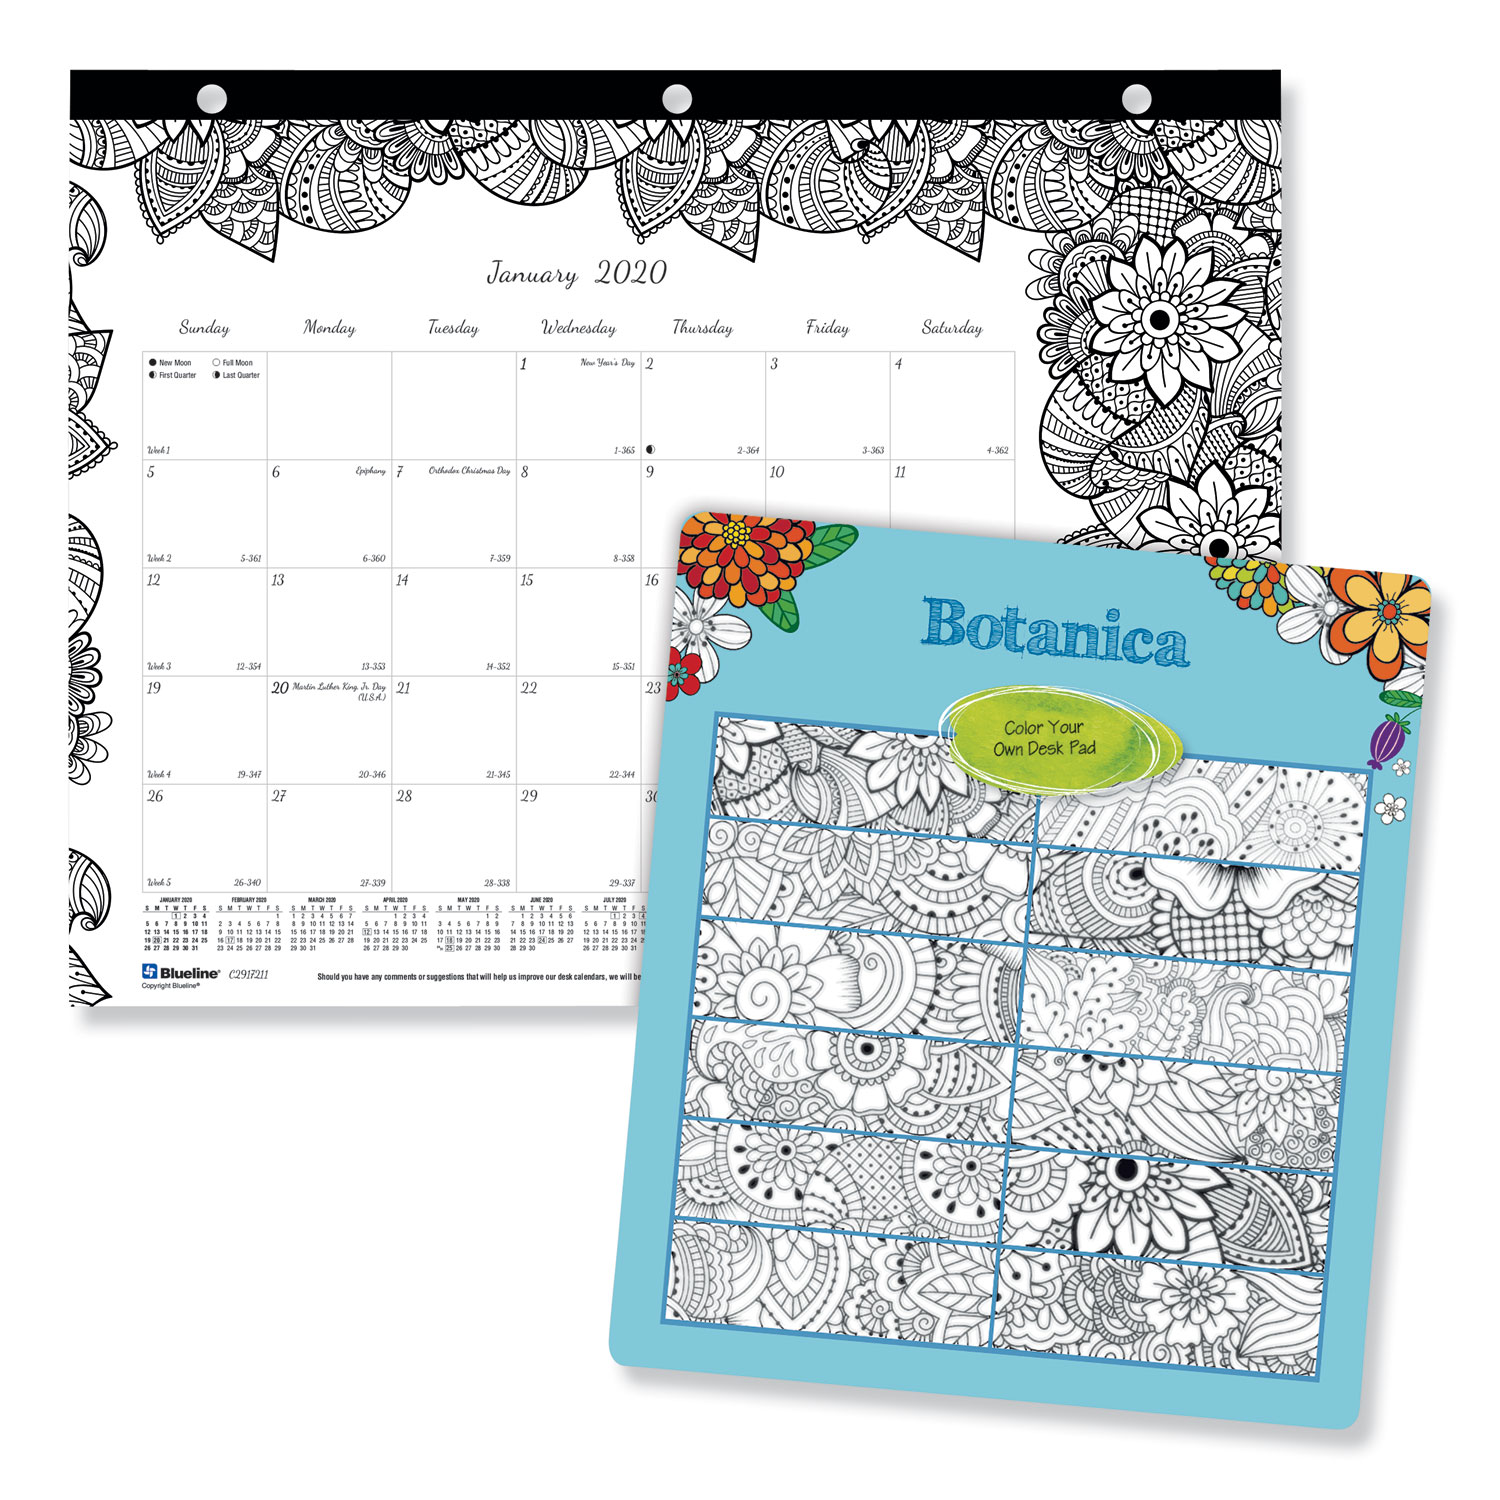 September 2019 Coloring Calendar (With images) | Coloring calendar ... | 1500x1500